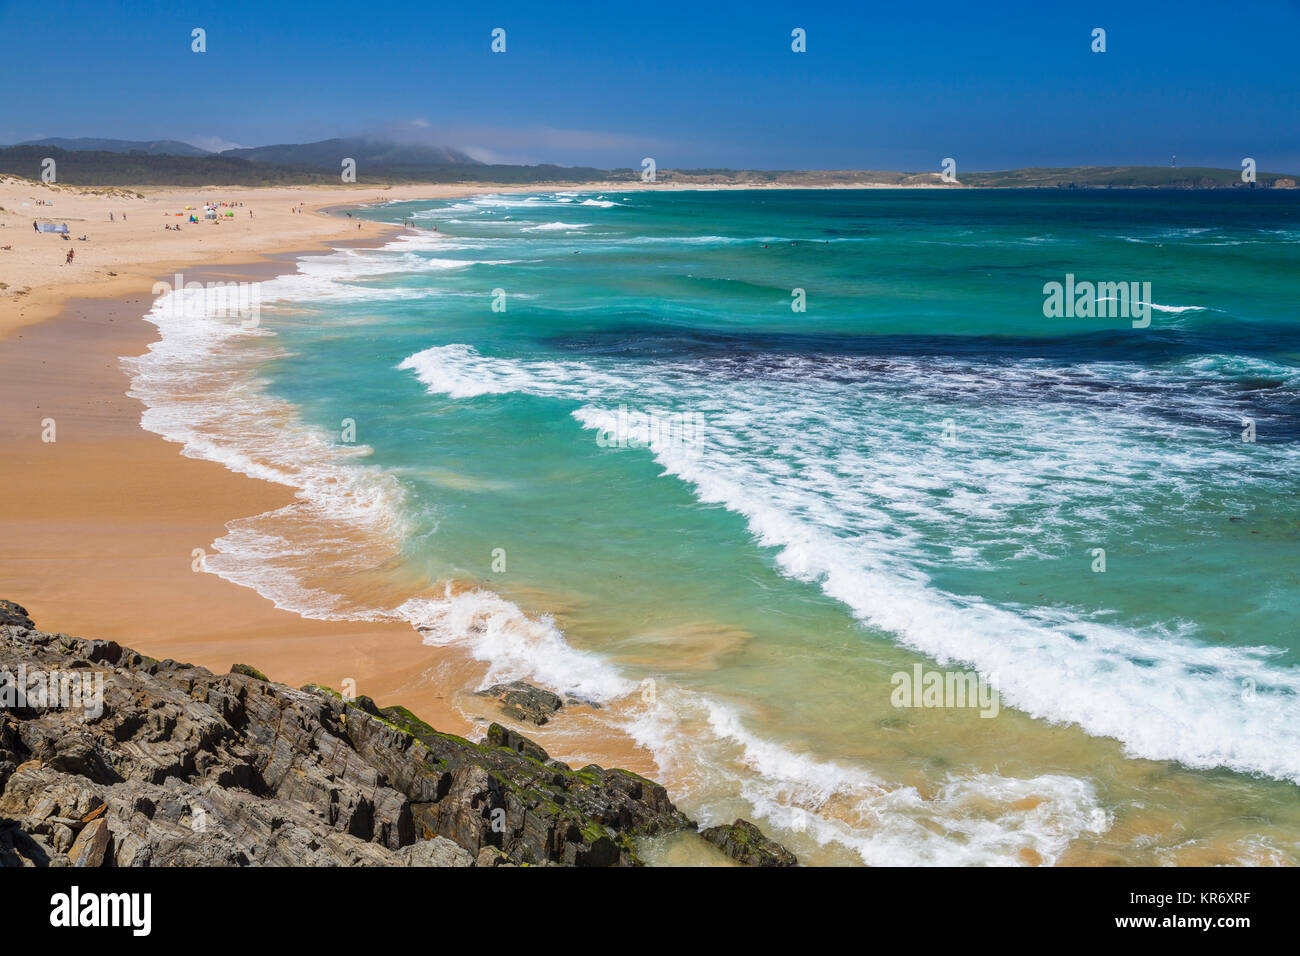 High angle view from cliff along long sandy beach. - Stock Image